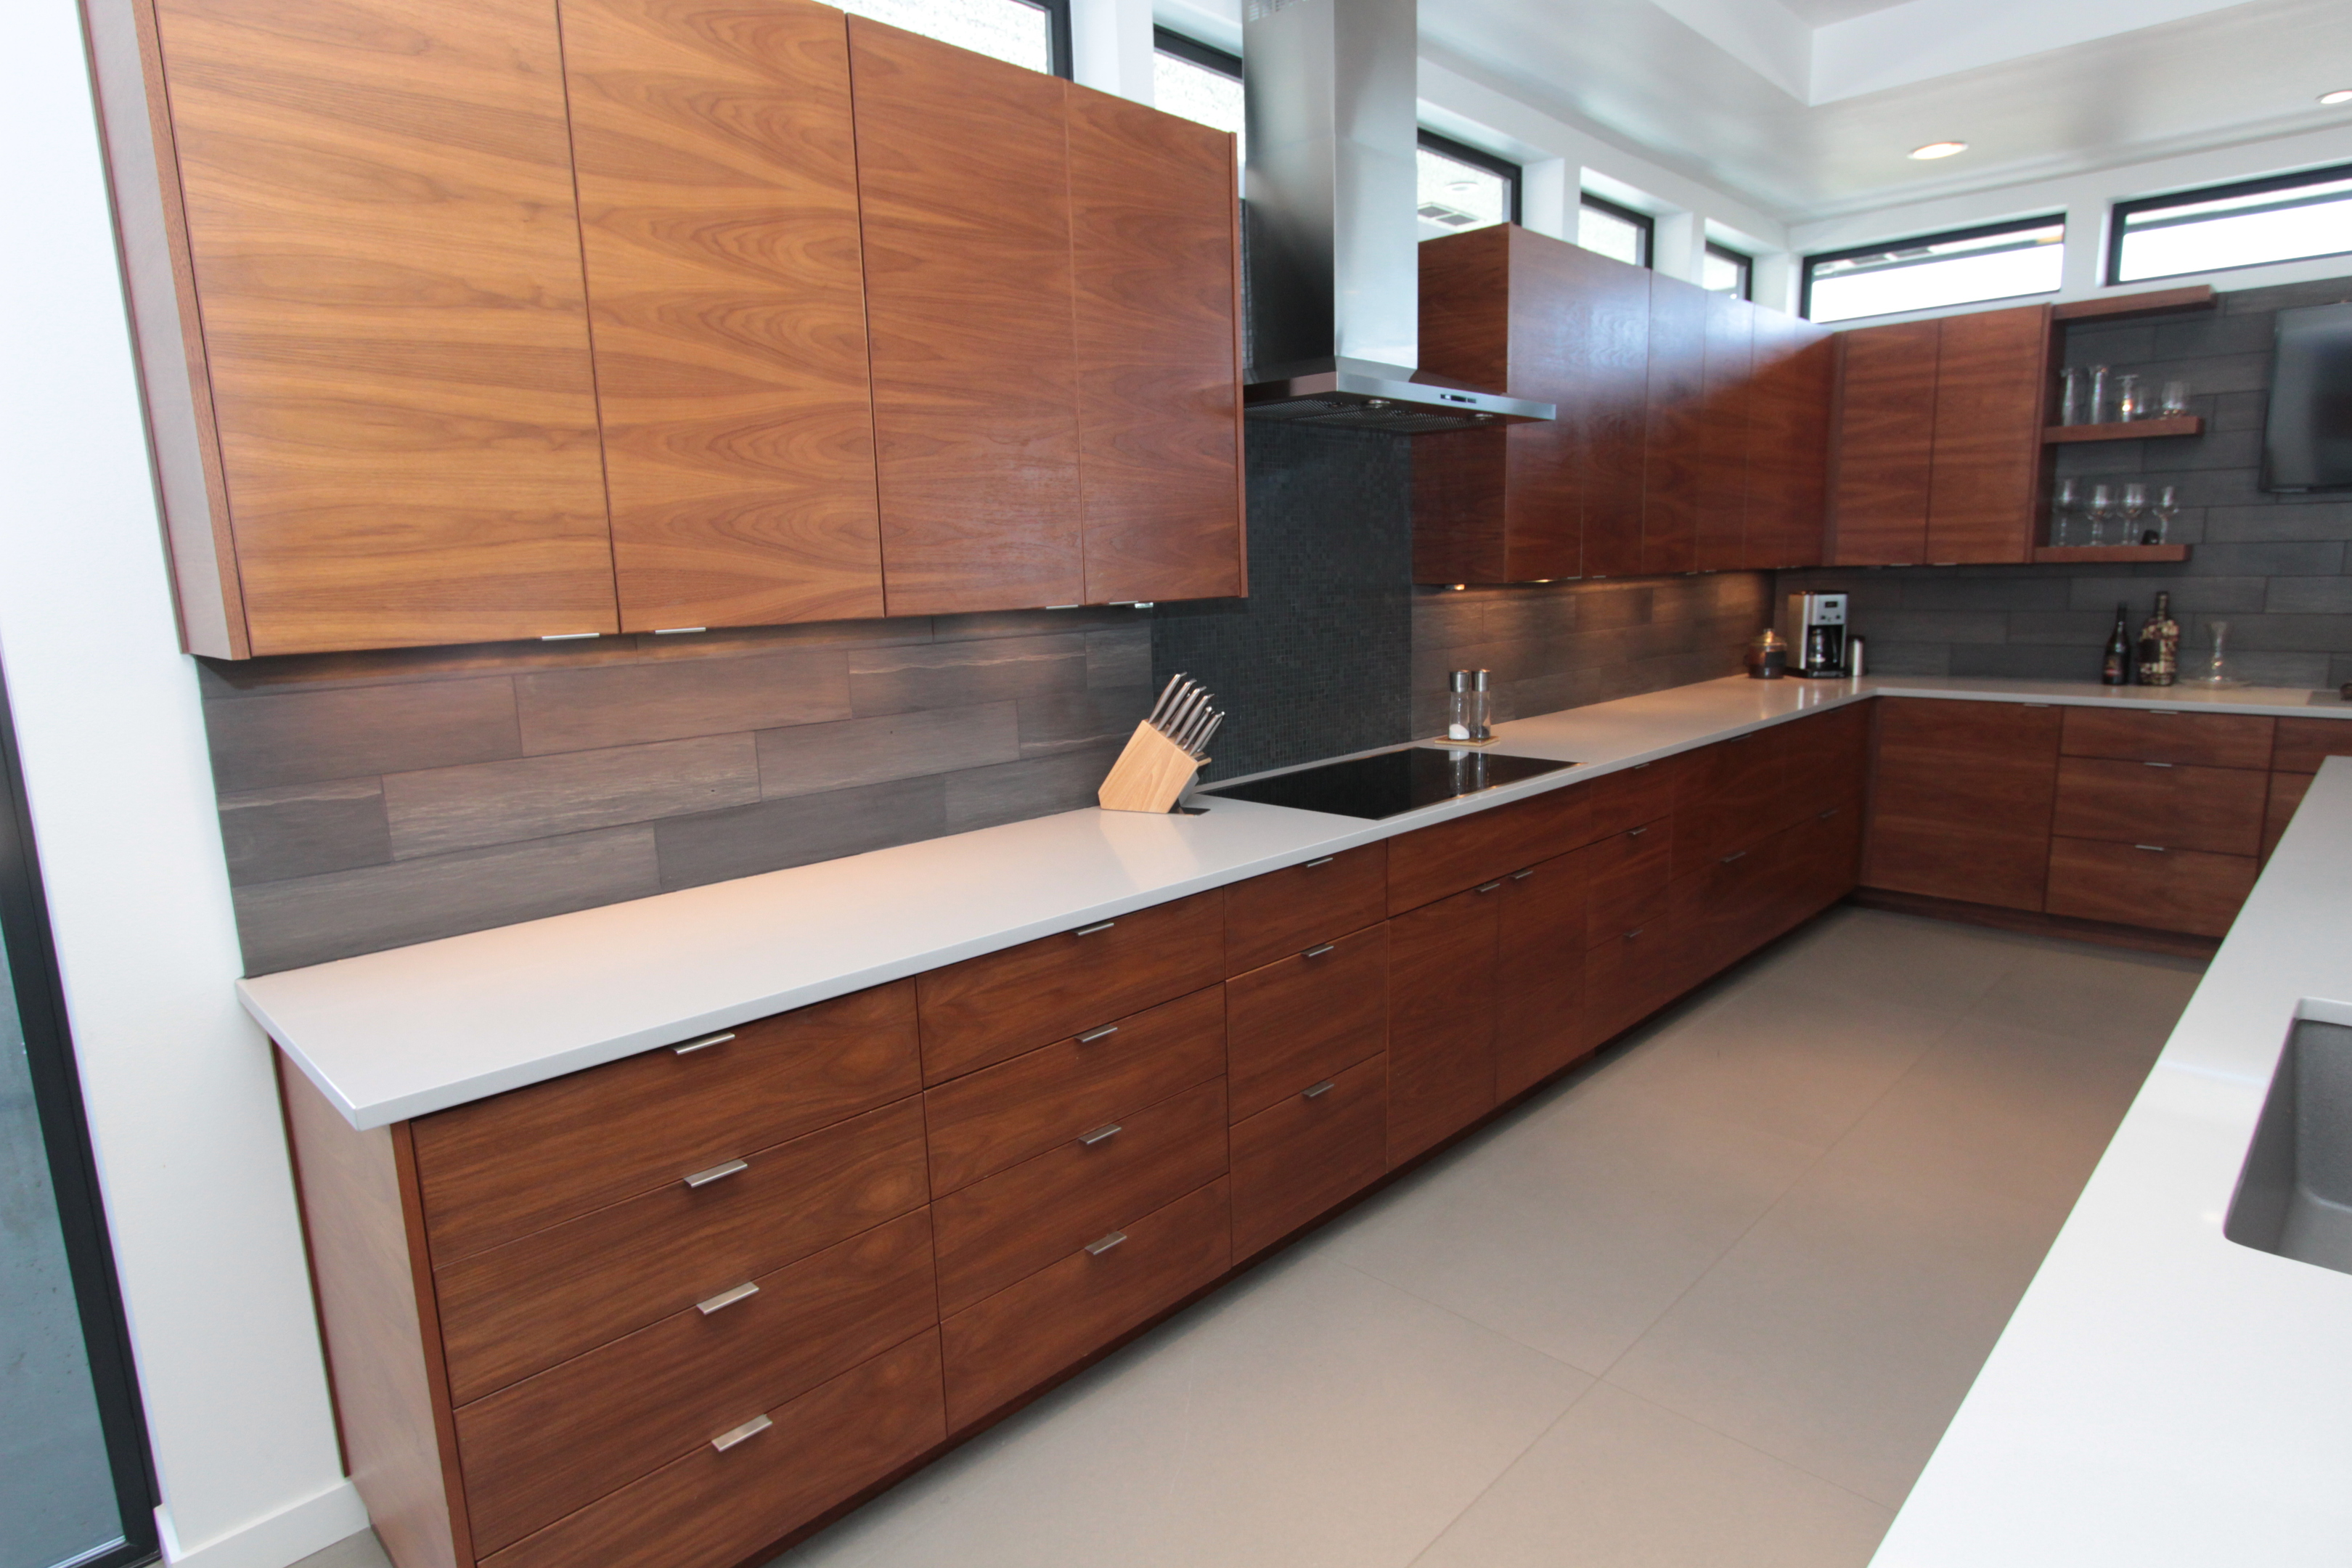 Kitchen  contemporary style  walnut  medium color  banded door  frameless construction  open shelves  shelves  chimney hood  bank of drawers  horizontal grain match